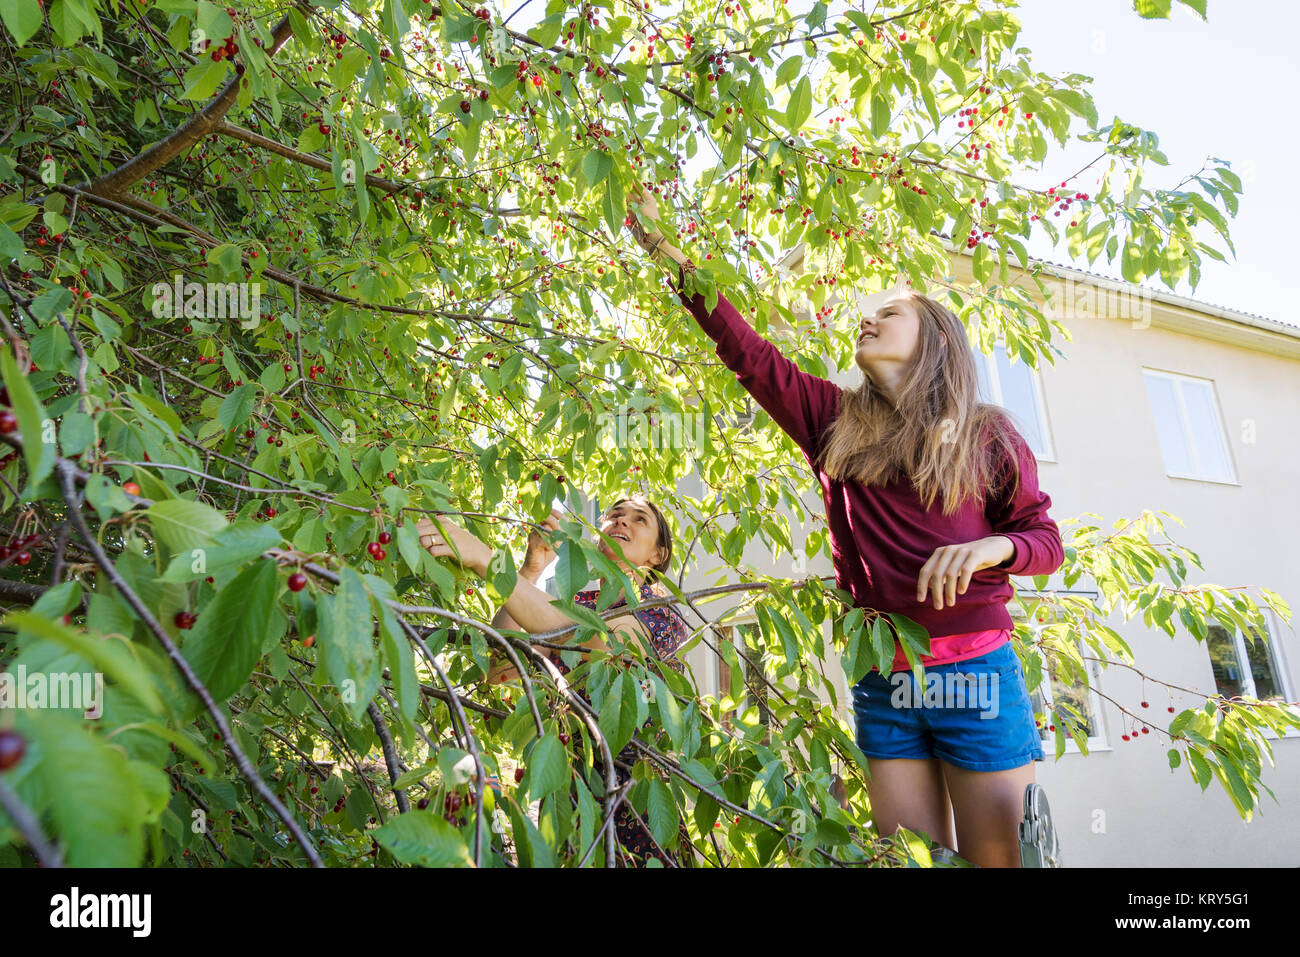 A woman and a girl picking cherries from the tree - Stock Image